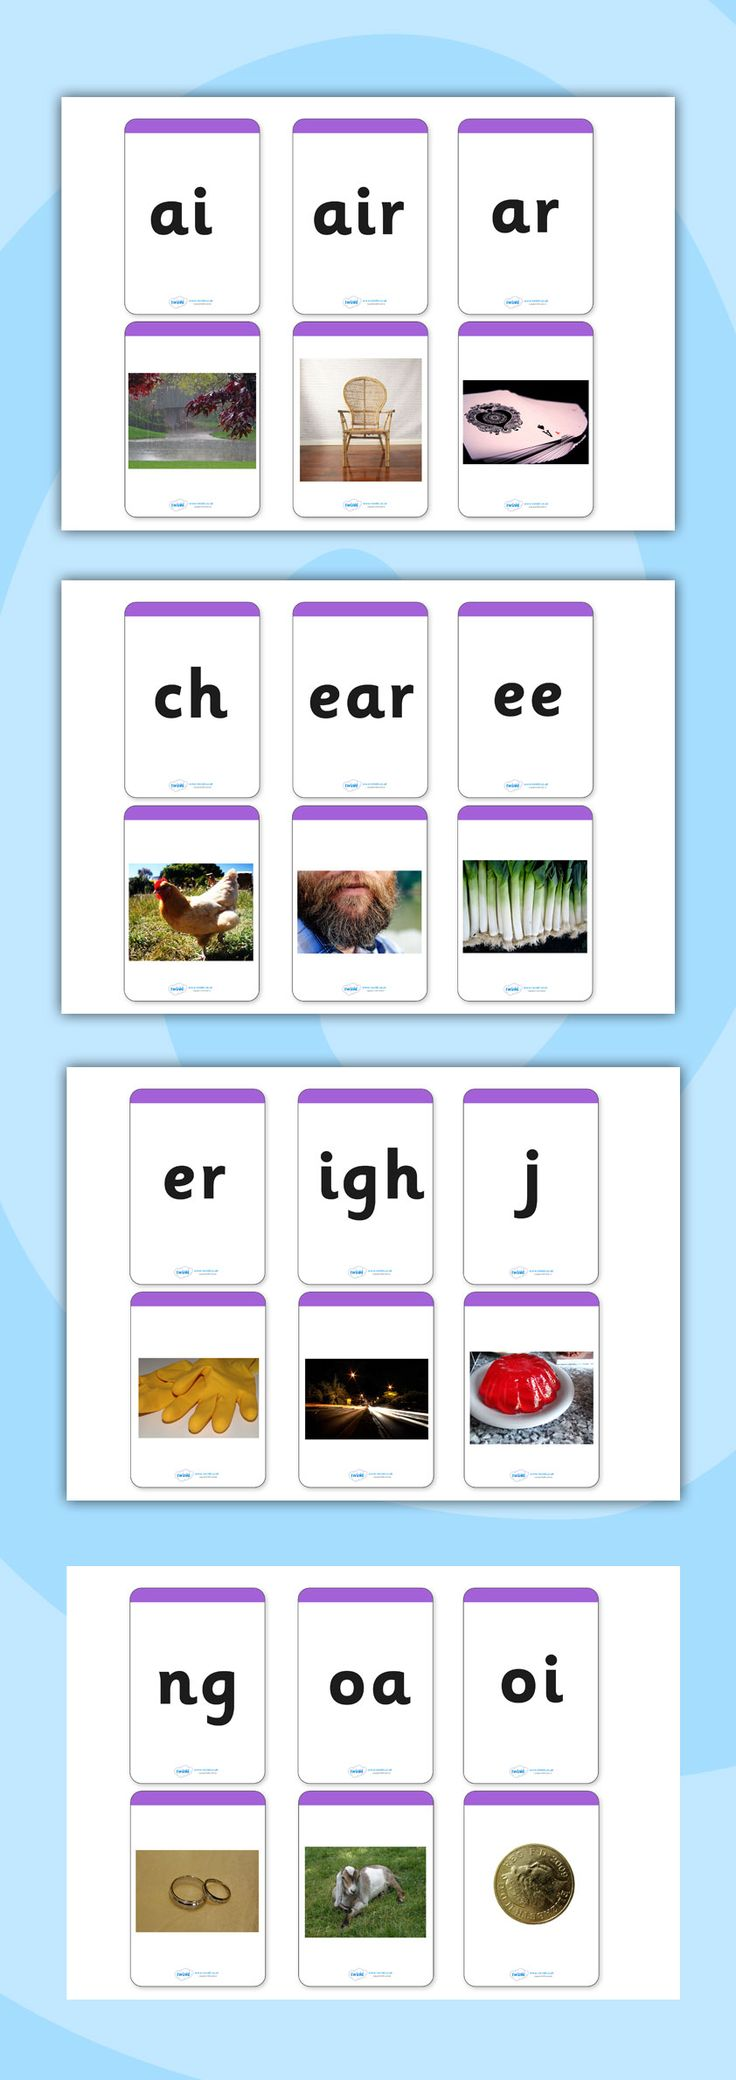 Twinkl Resources >> Phase 3 Photo Matching Cards Image to Sound>> Printable resources for Primary, EYFS, KS1 and SEN.  Thousands of classroom displays and teaching aids! Literacy, English, Letters and Sounds, Matching Cards, Activities, Phase 3